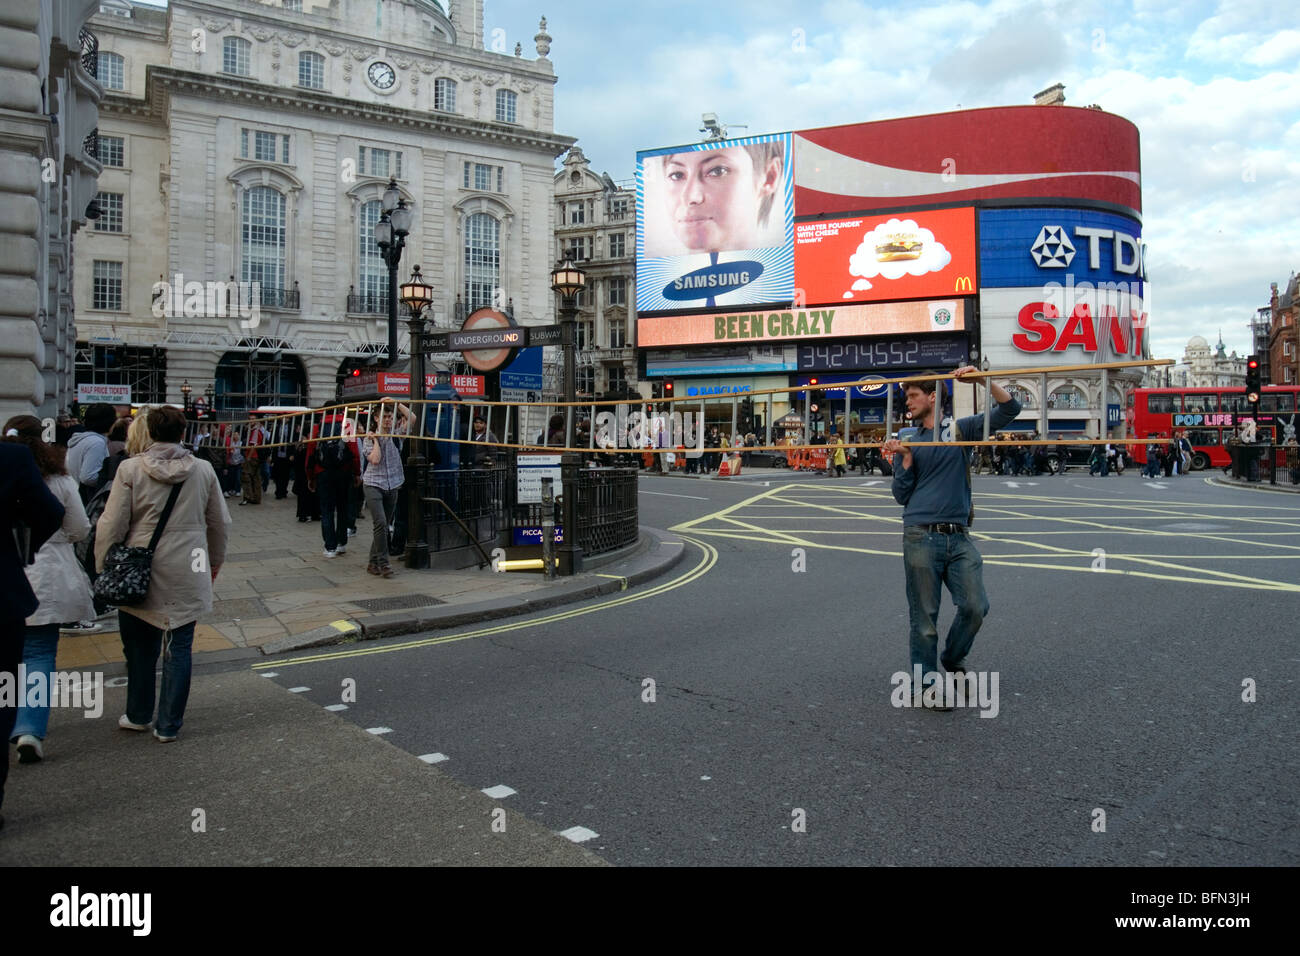 a man with a long ladder crosses the street at picadilly in london - Stock Image